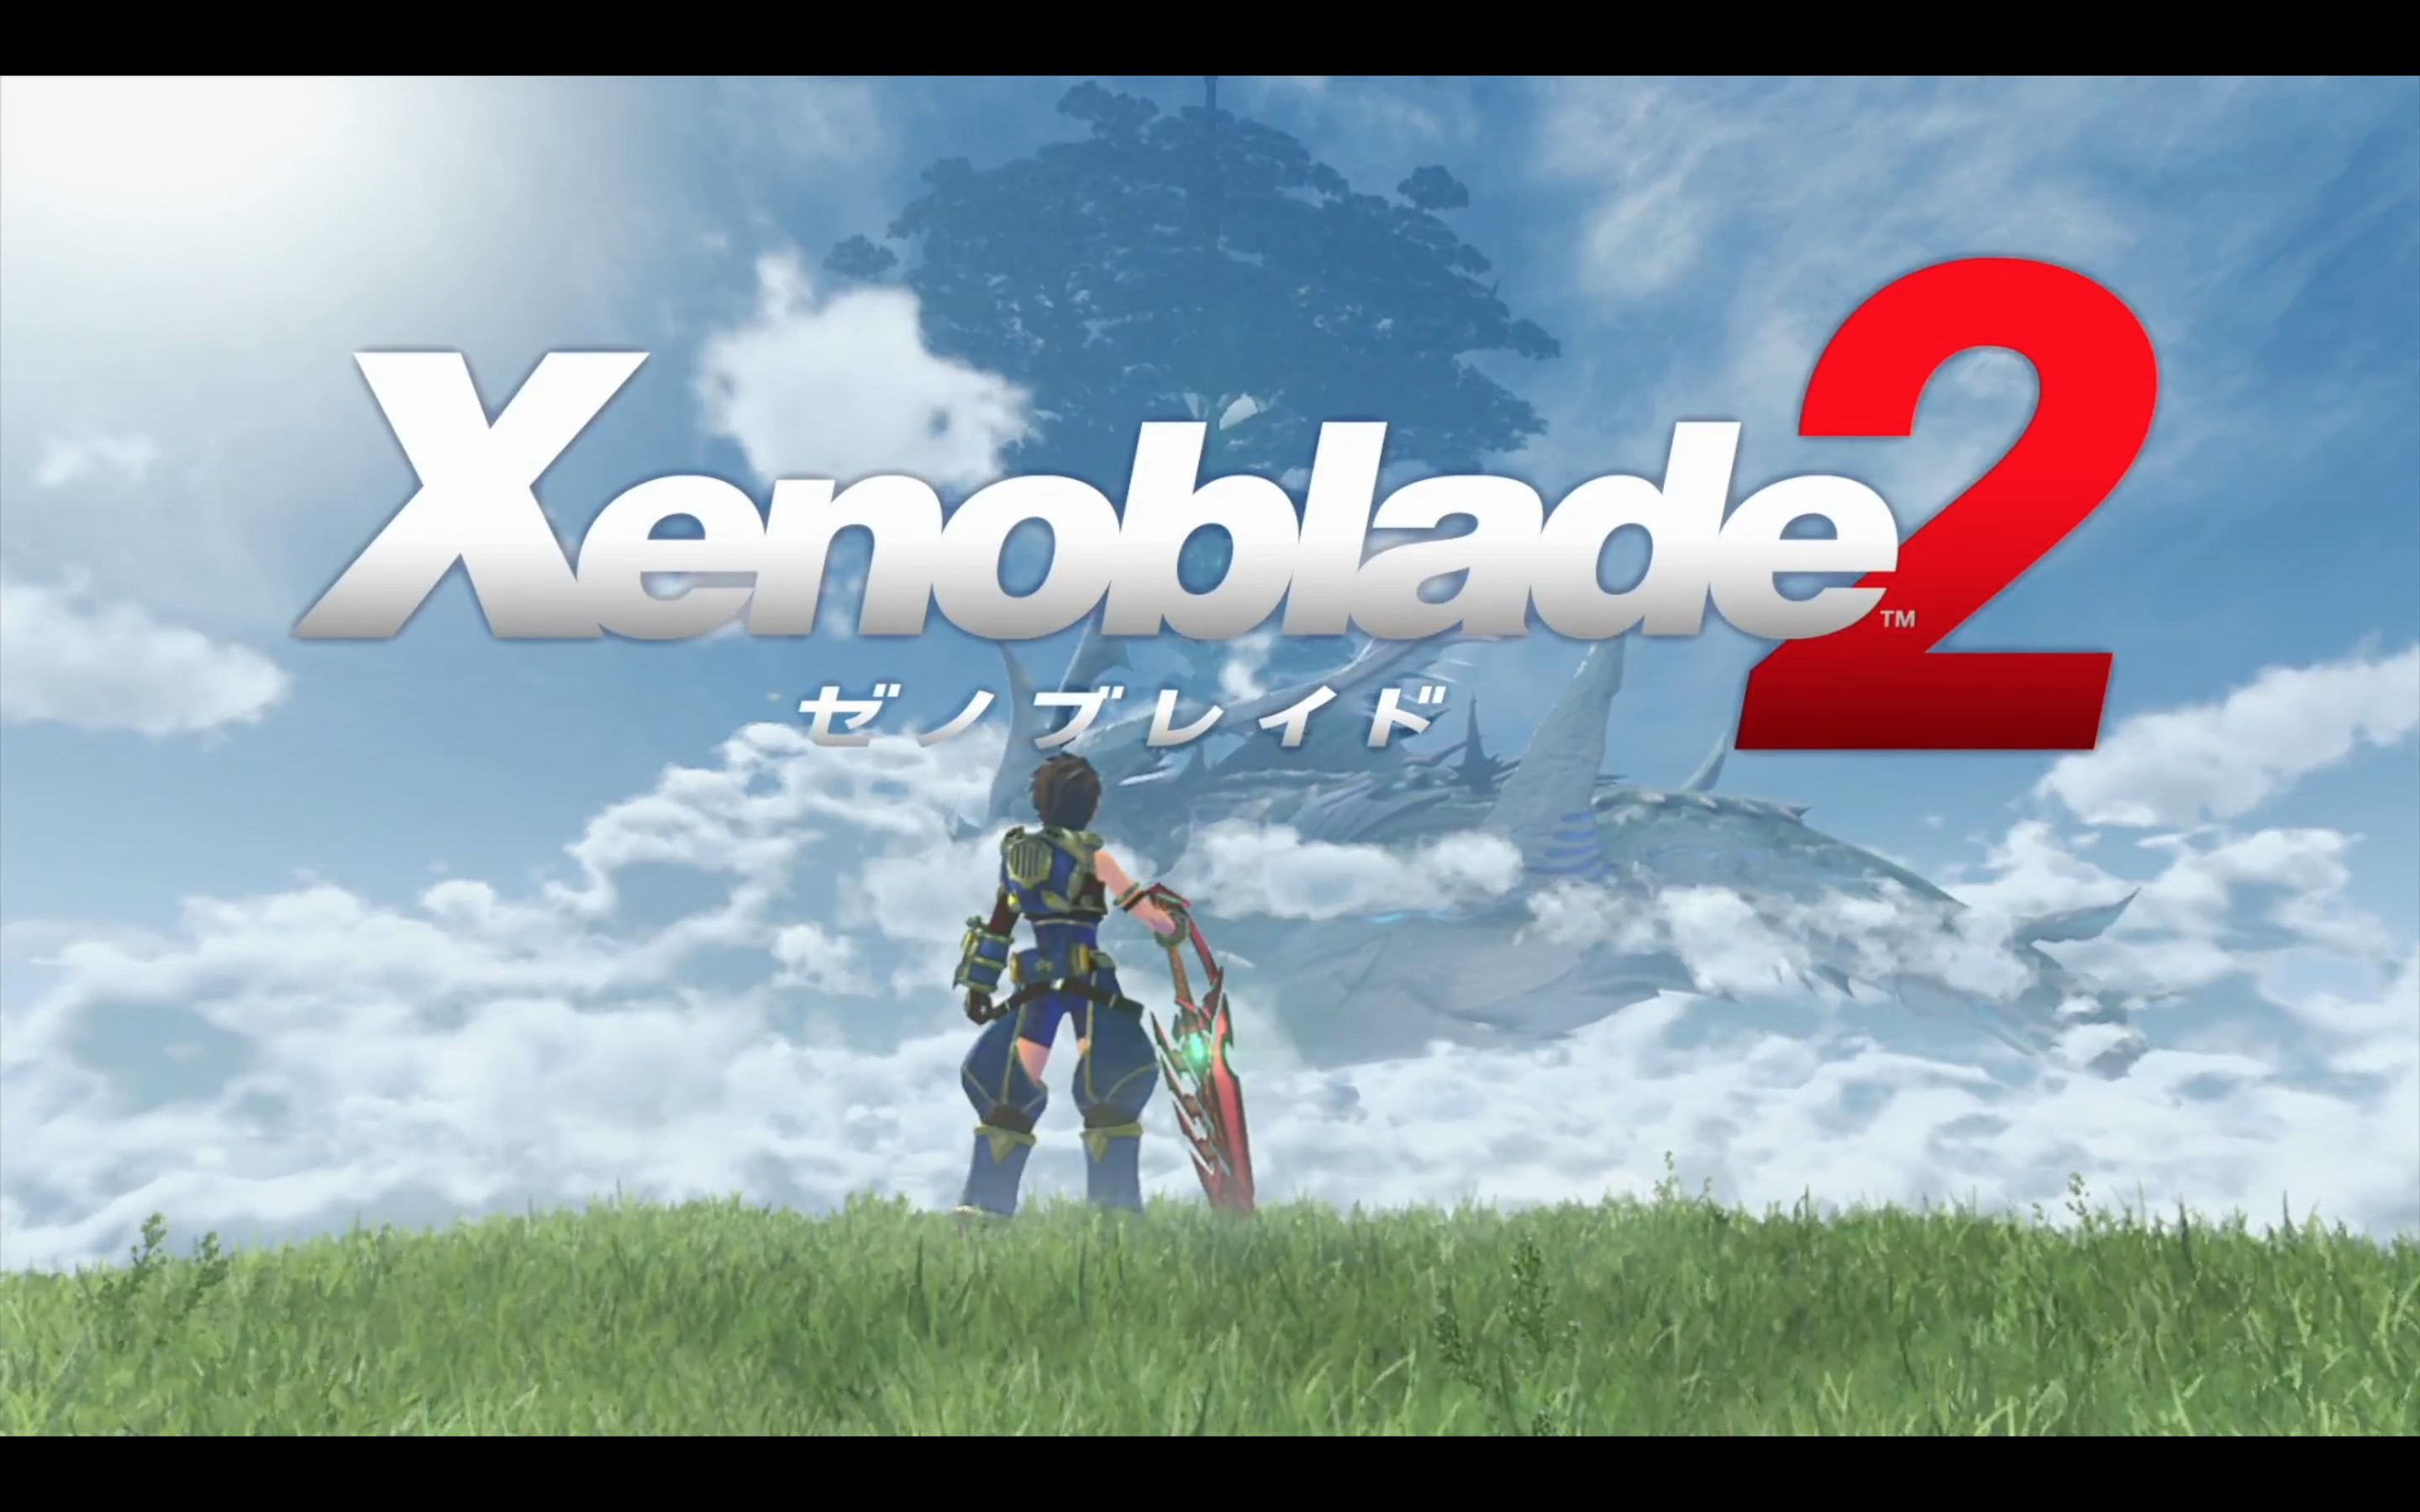 Xenoblade Chronicles 2 title screen from Nintendo Switch presentation